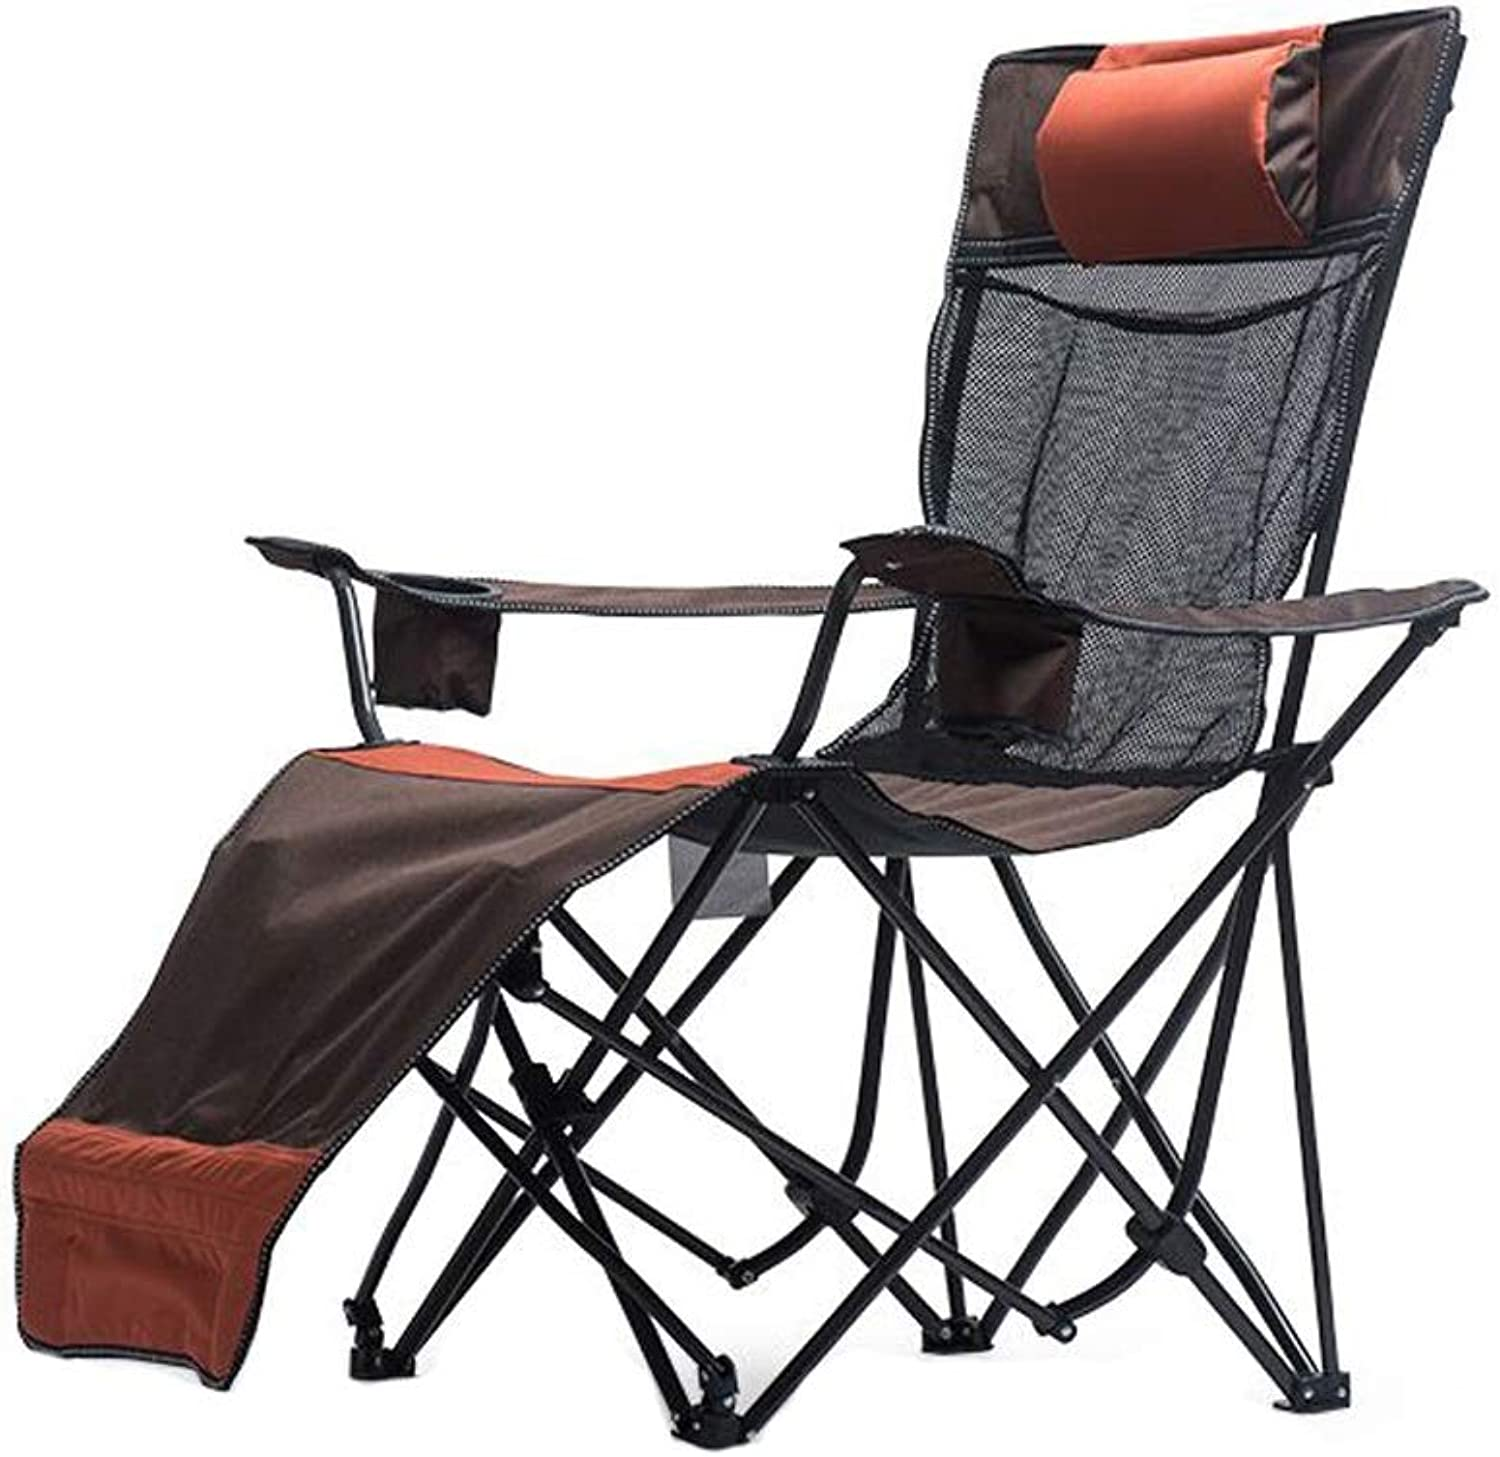 Nevy Reclining with Cup Holder Folding Compact Portable Outdoor Camp Chairs Fishing Seat